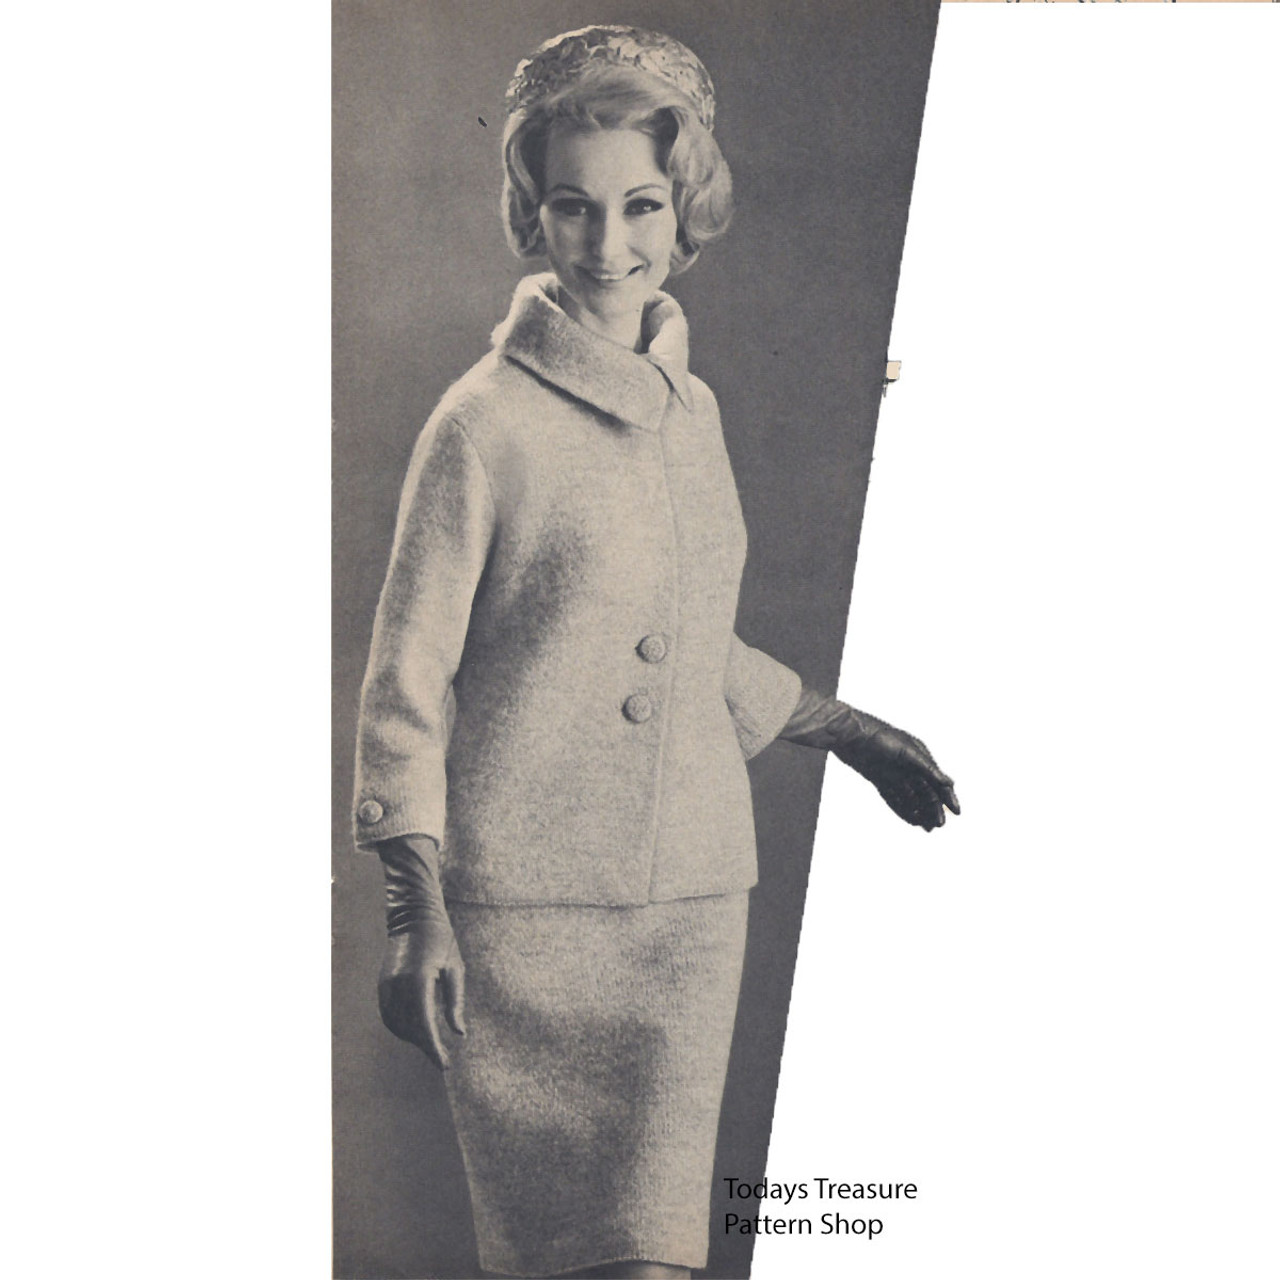 Loose Fitting Knitted Suit pattern, vintage 1960s